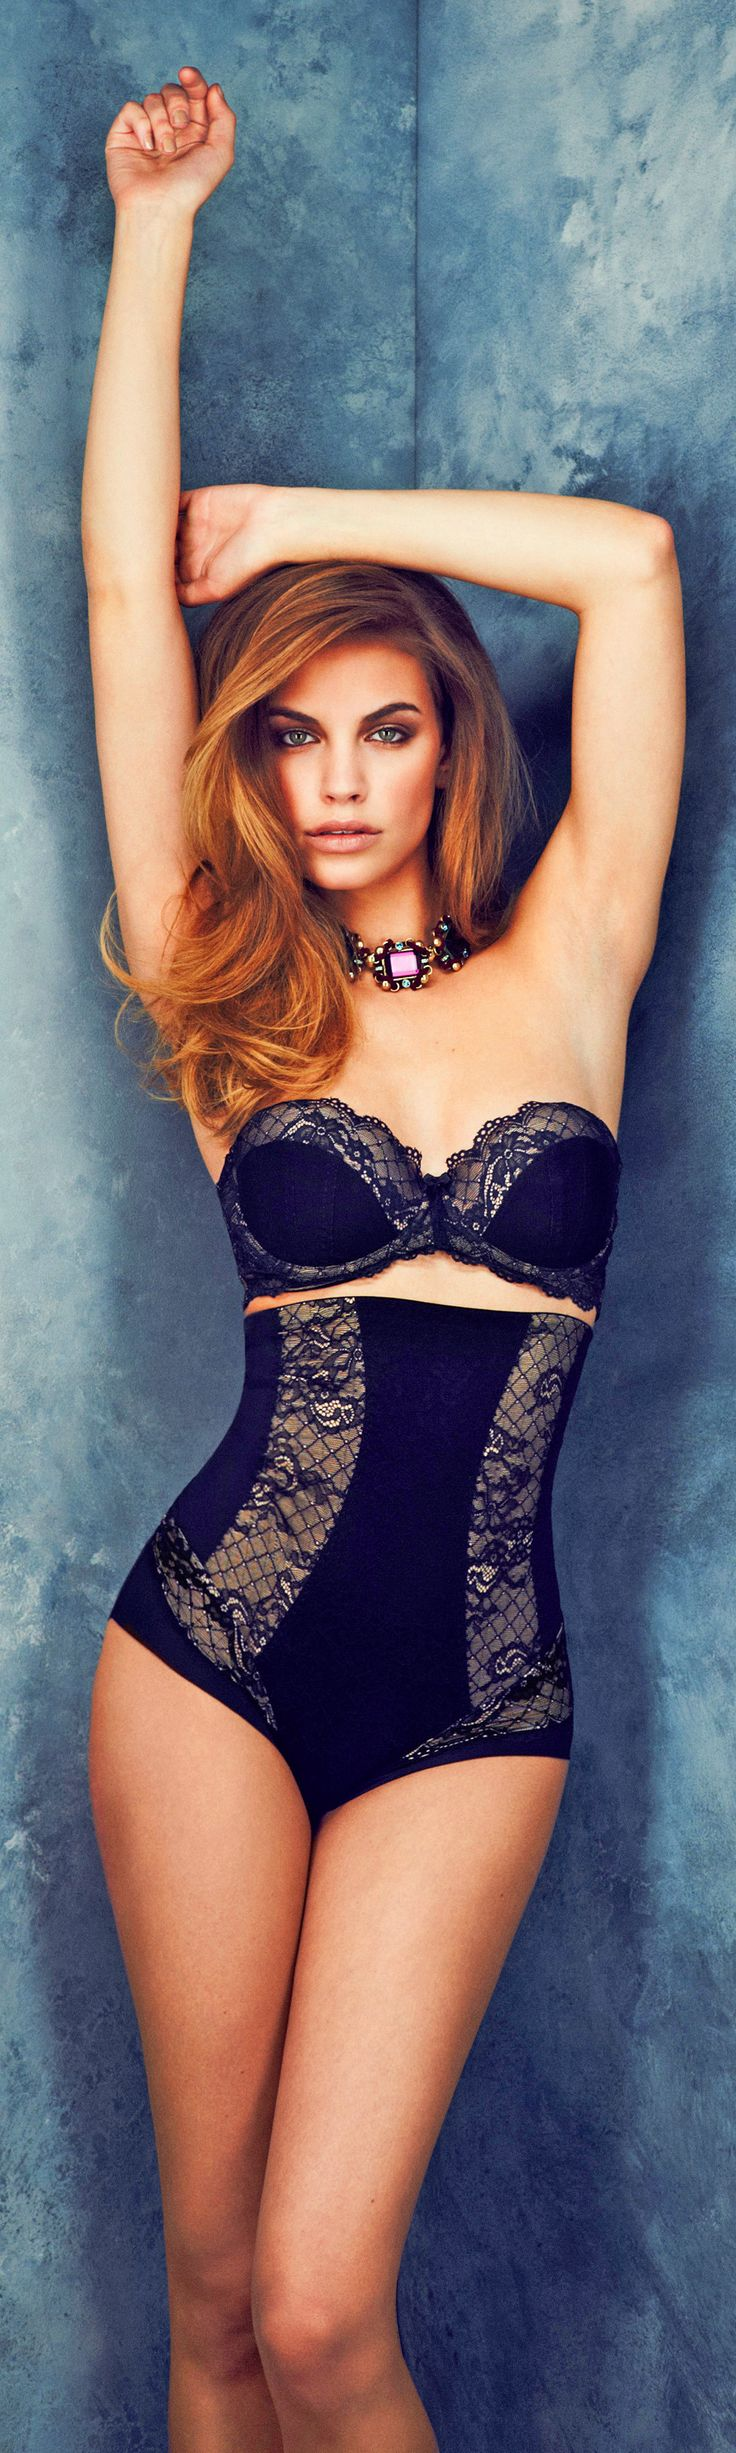 Shapewear: Can Your Undies Pass the Travel Test? - http://boomerinas.com/2013/07/shapewear-for-women-can-your-undies-pass-the-travel-test/